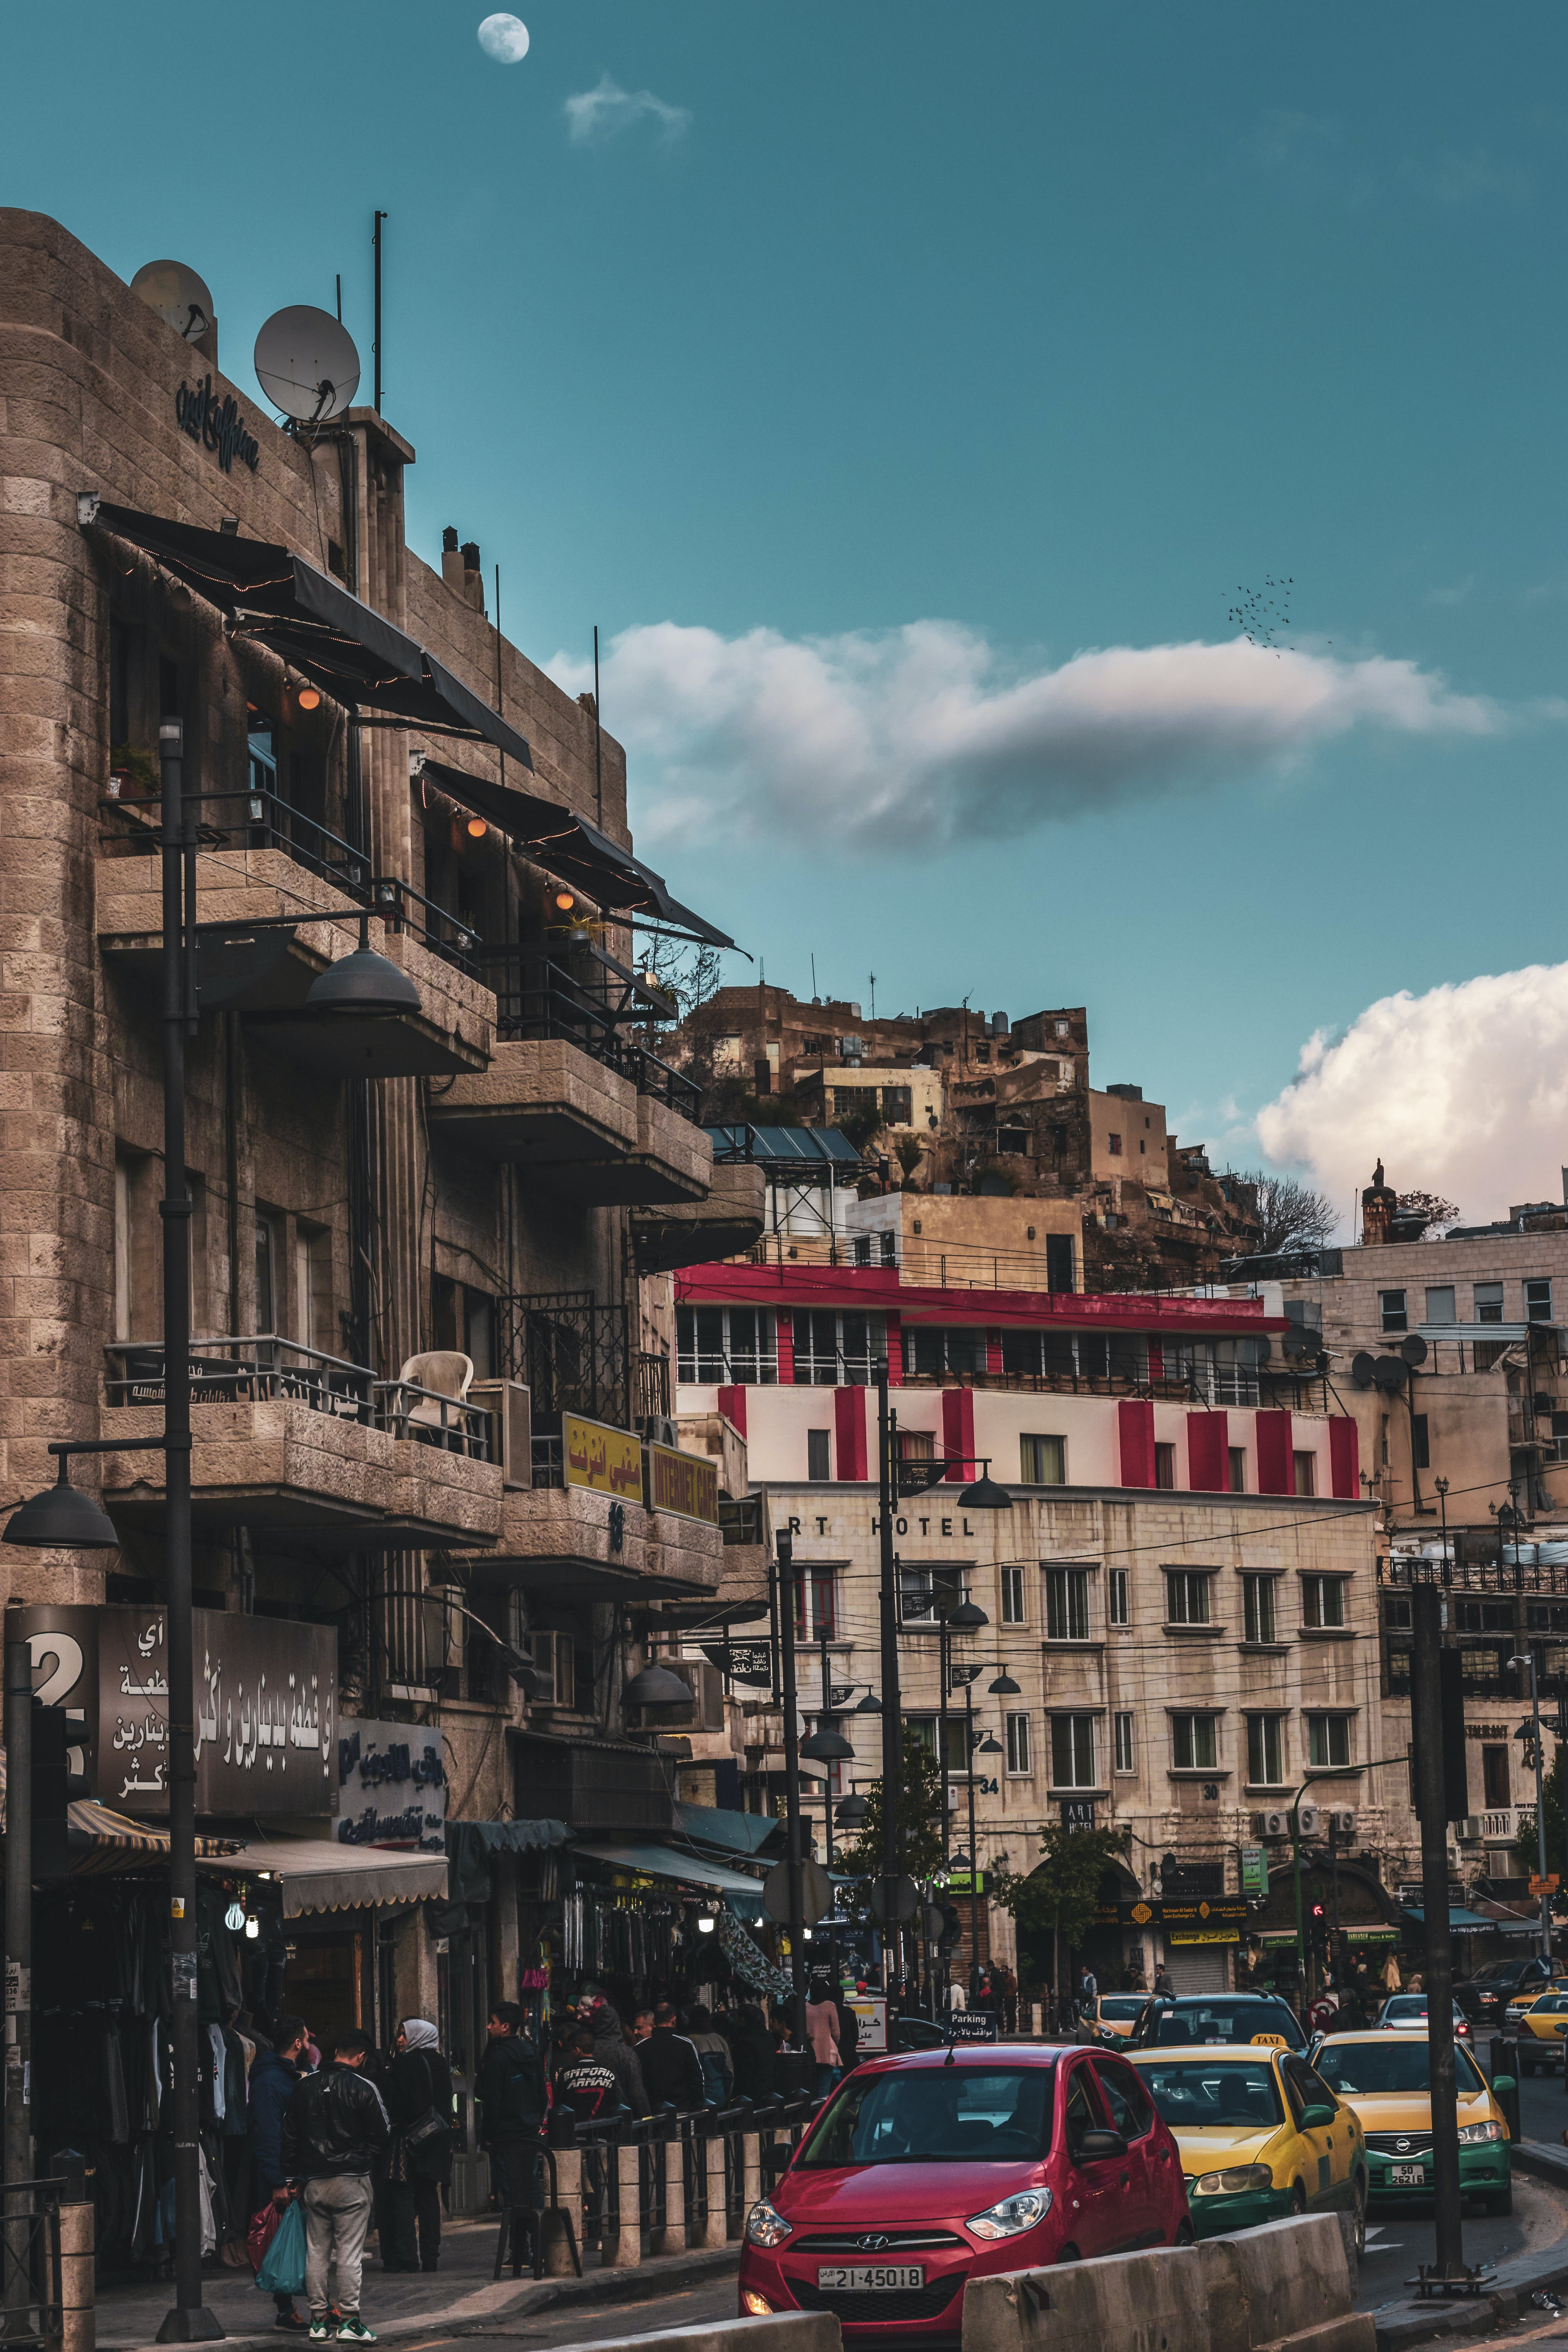 Free stock photo of amman, cars, clouds, hotel